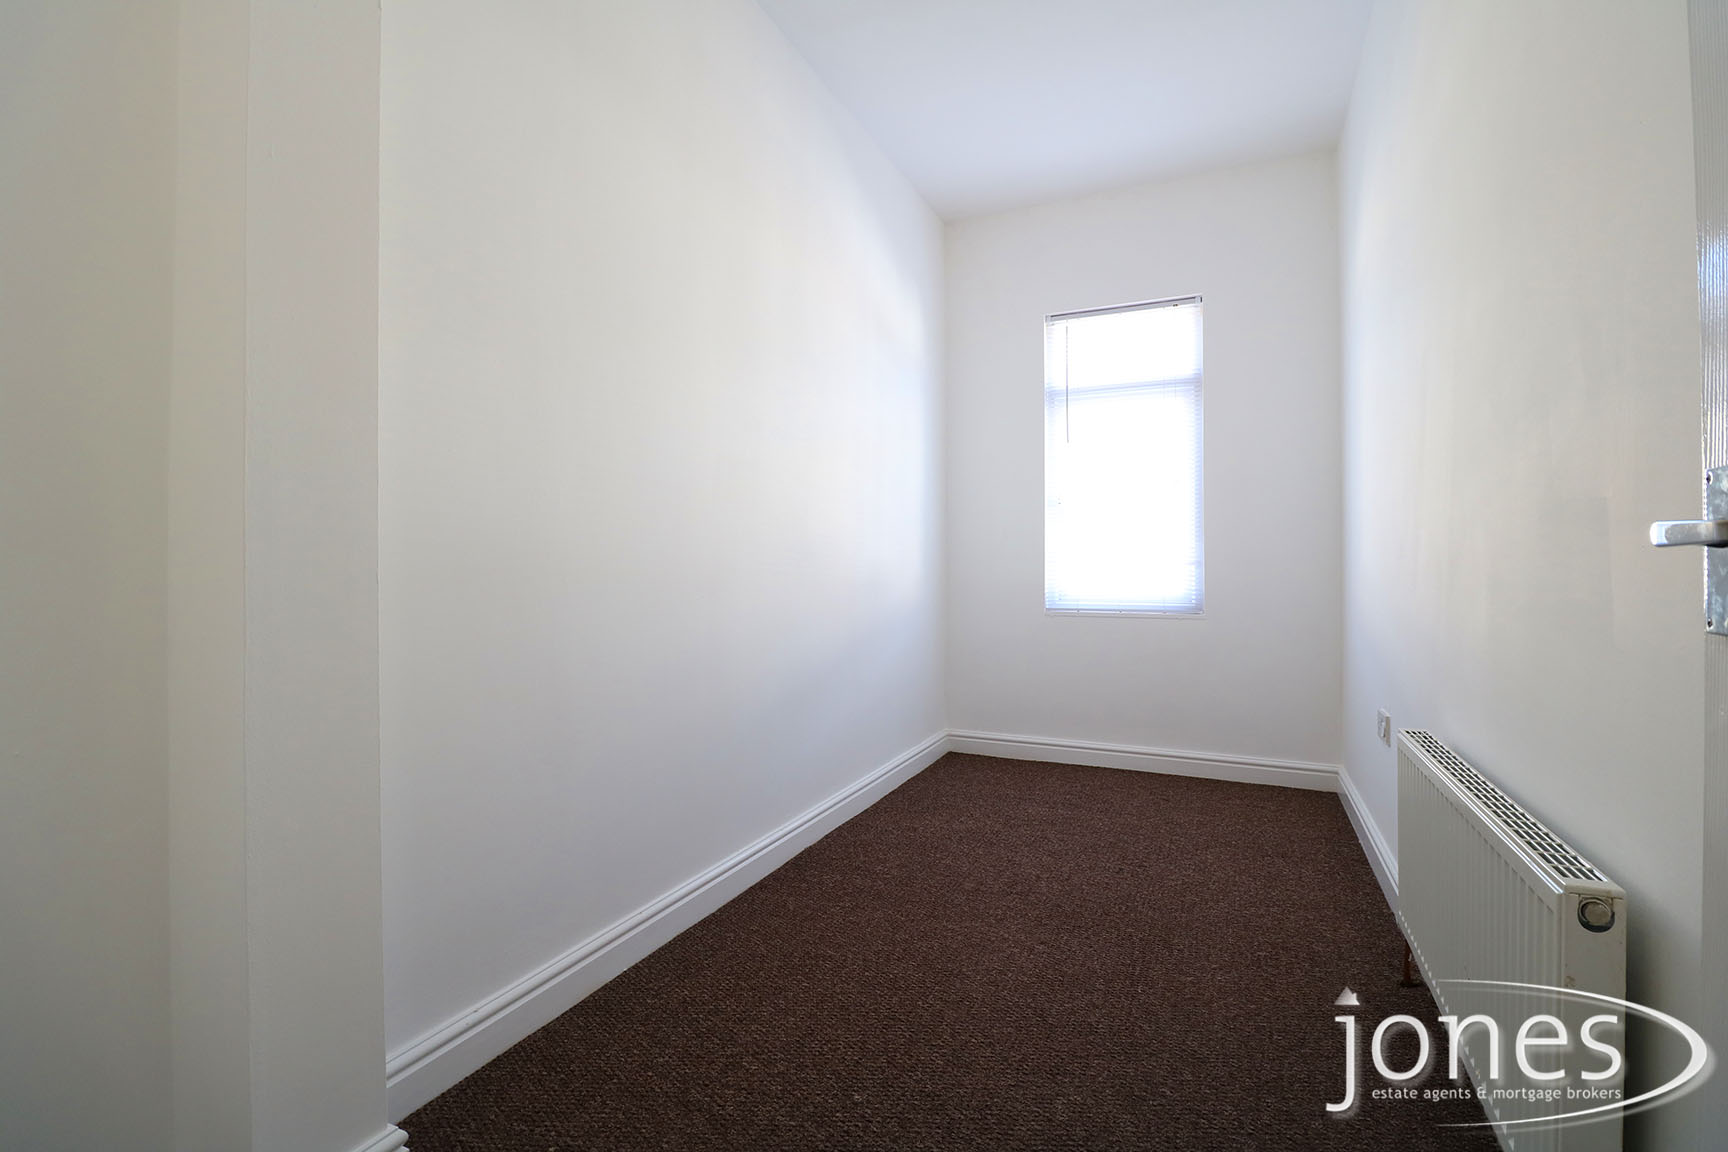 Home for Sale Let - Photo 06 Castlereagh Road,  Stockton on Tees, TS19 0DL